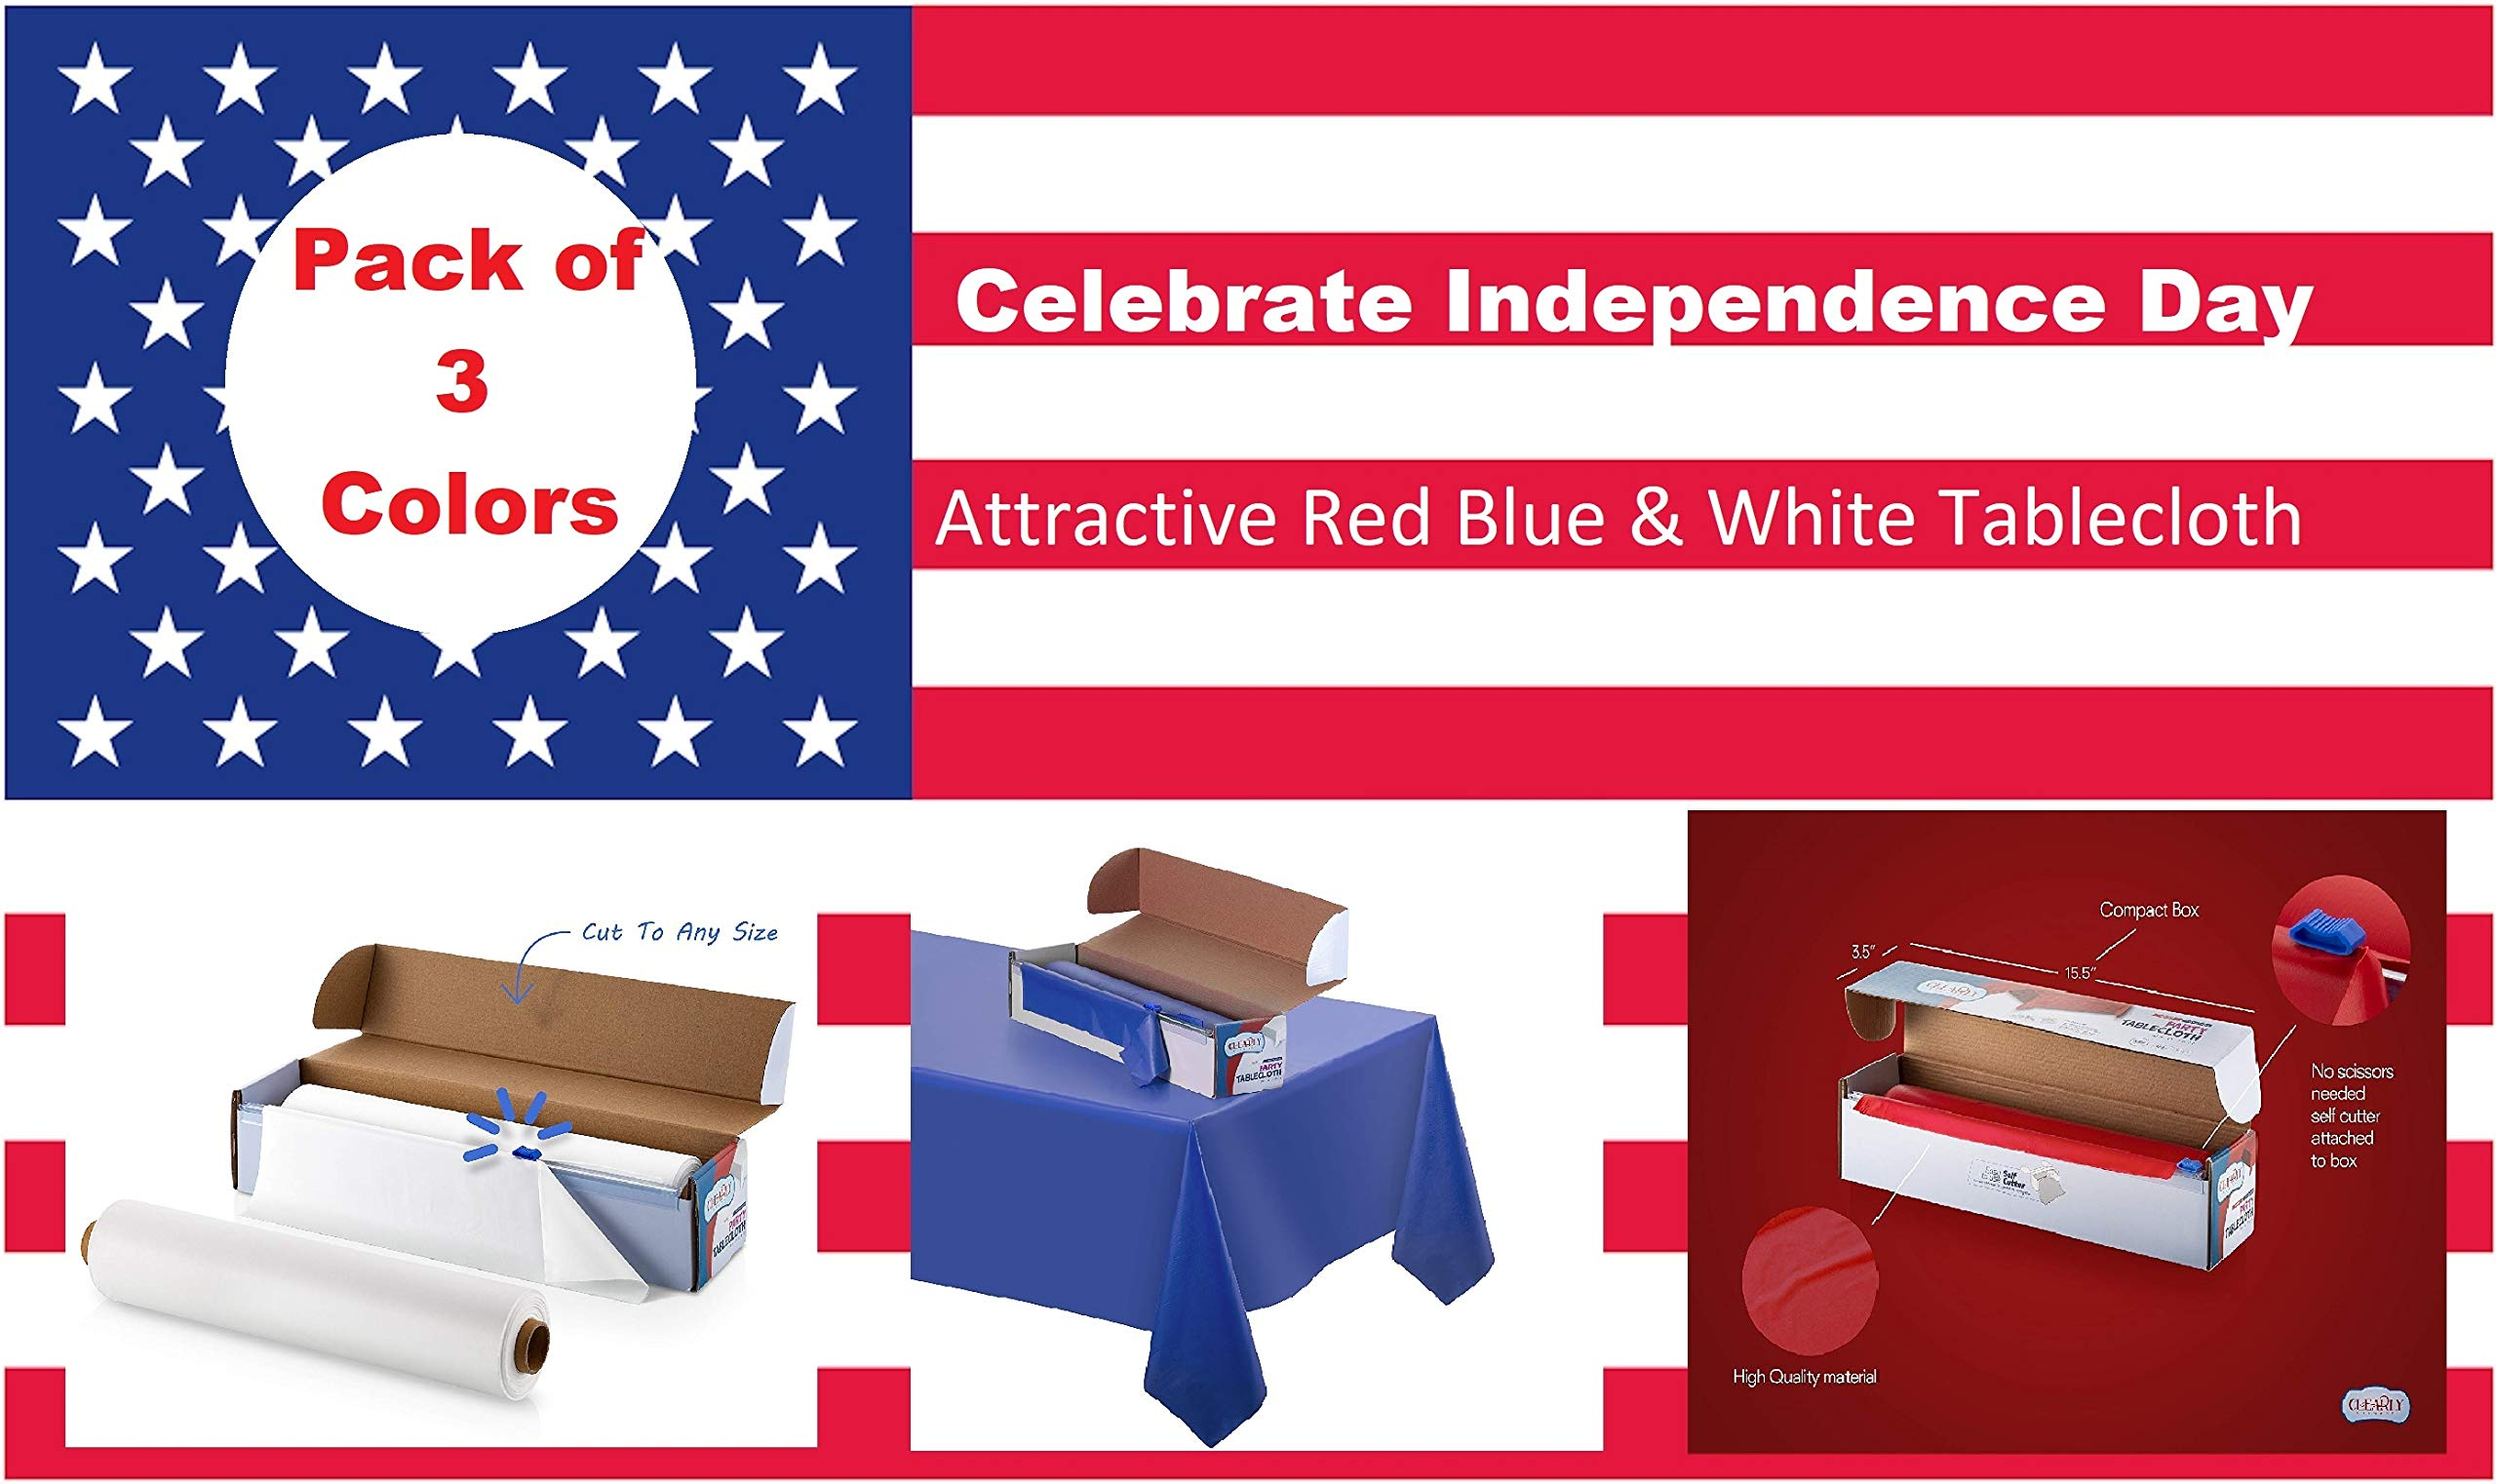 [3 Rolls] Patriotic Red, White, Blue Solid Plastic Tablecloth Rolls, Over 300 Feet. Perfect for July 4 'th Freedom Independence Day USA American Flag Theme Party or for Camping, Picnic, BBQ